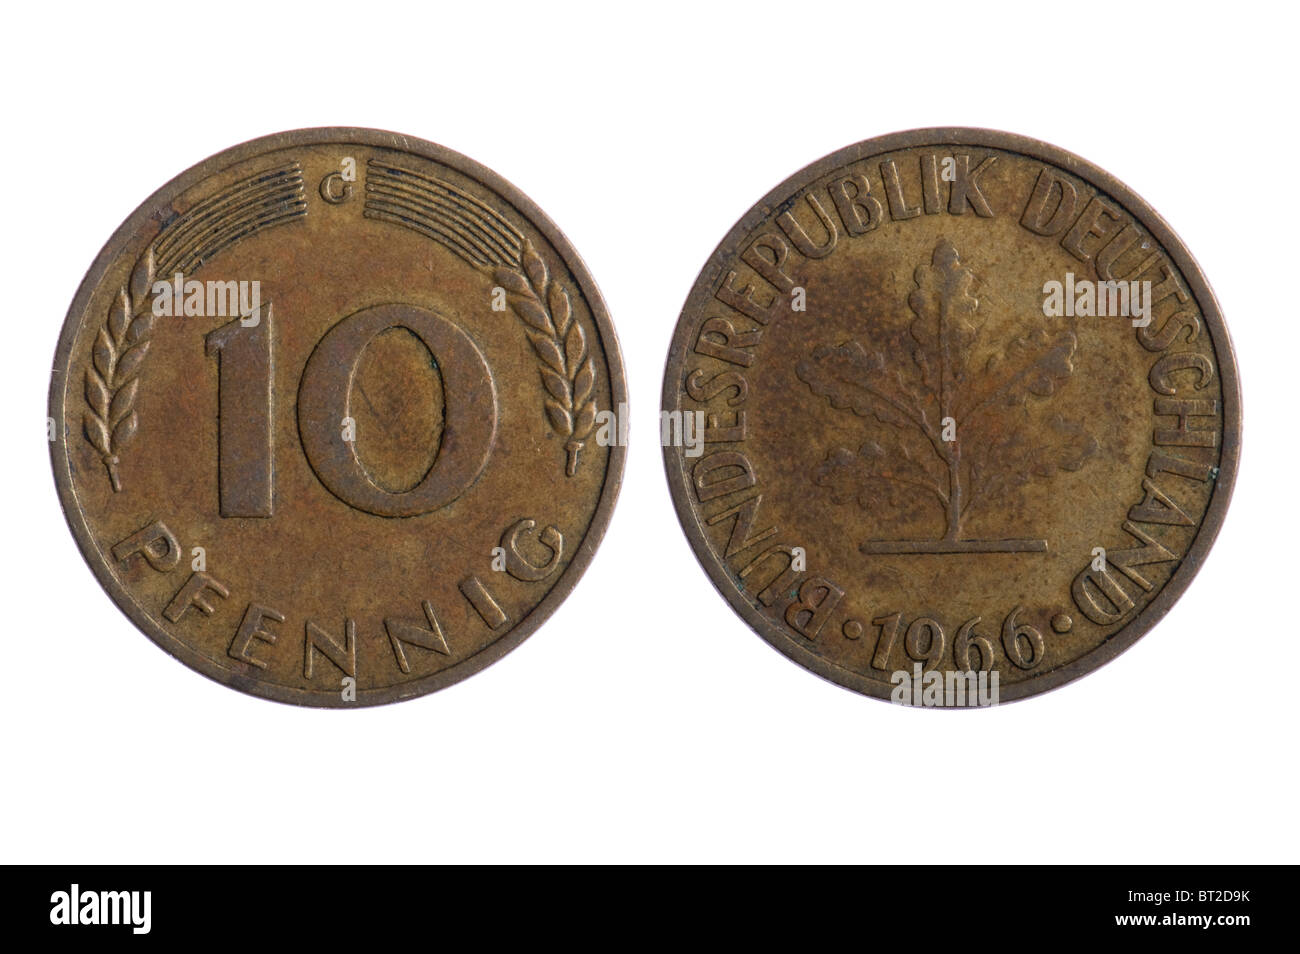 object on white - Deutschland pfenning coins close up - Stock Image